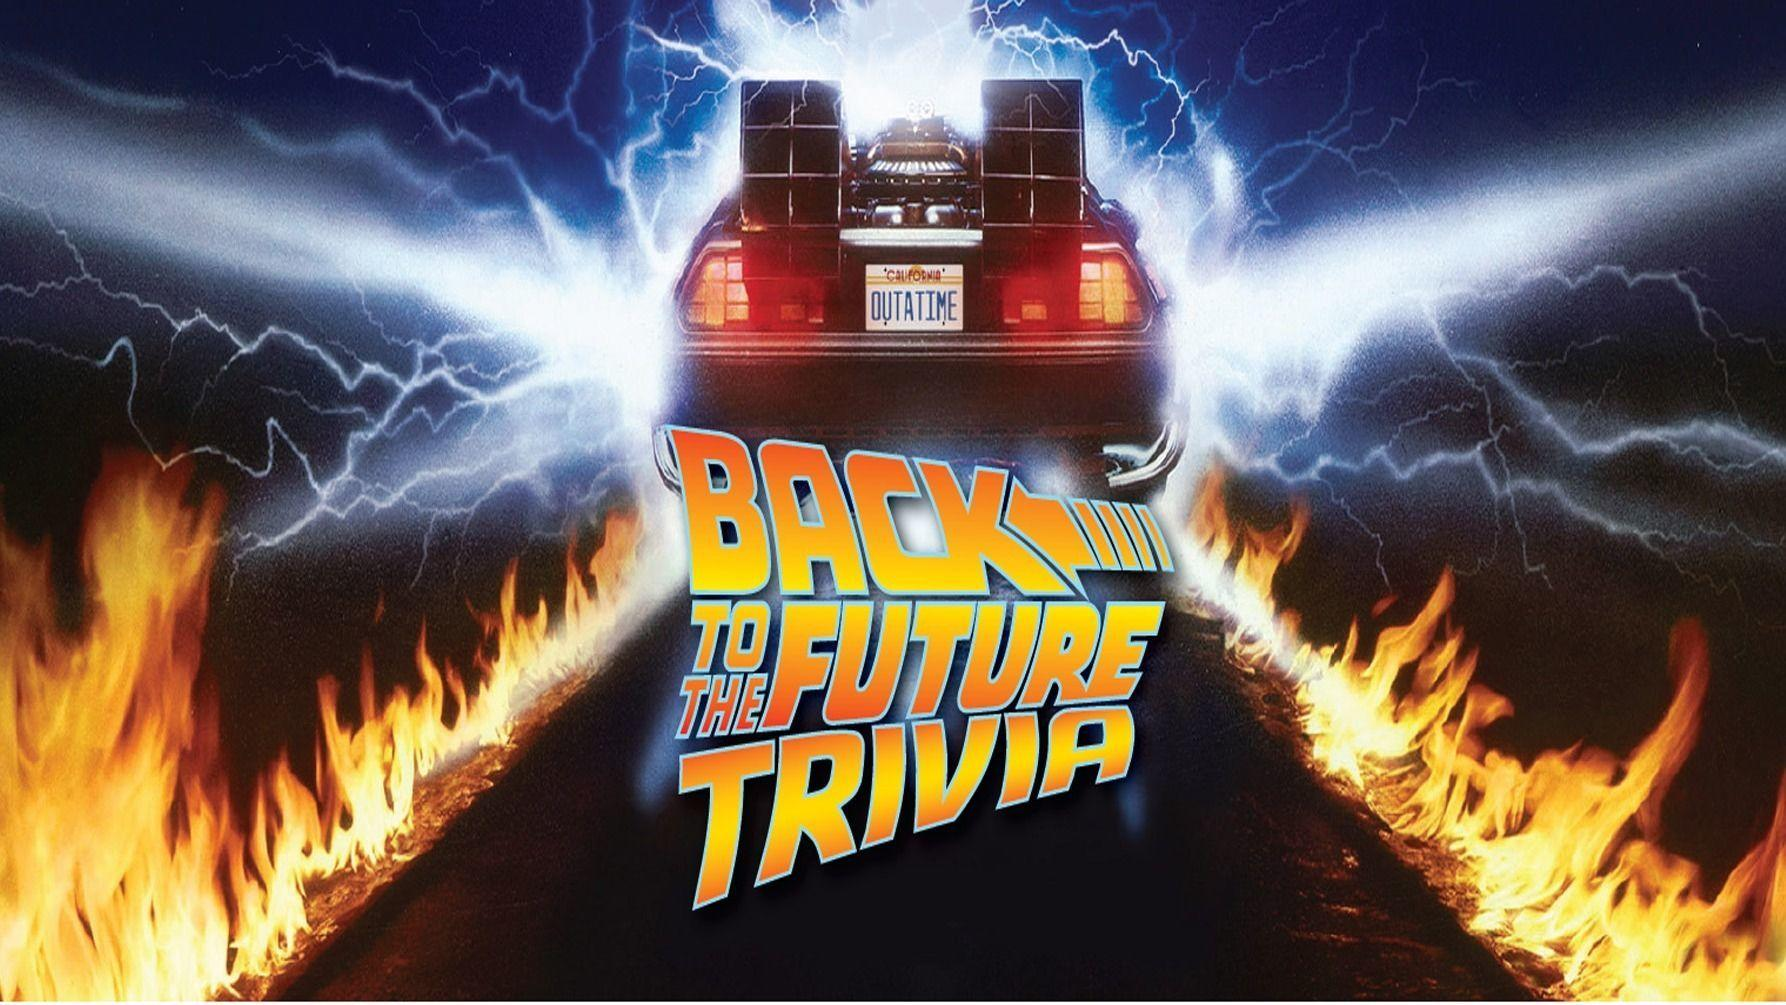 108071 image highres 490971730 - ONLINE LIVE- BACK to the FUTURE Trivia! Fundraiser